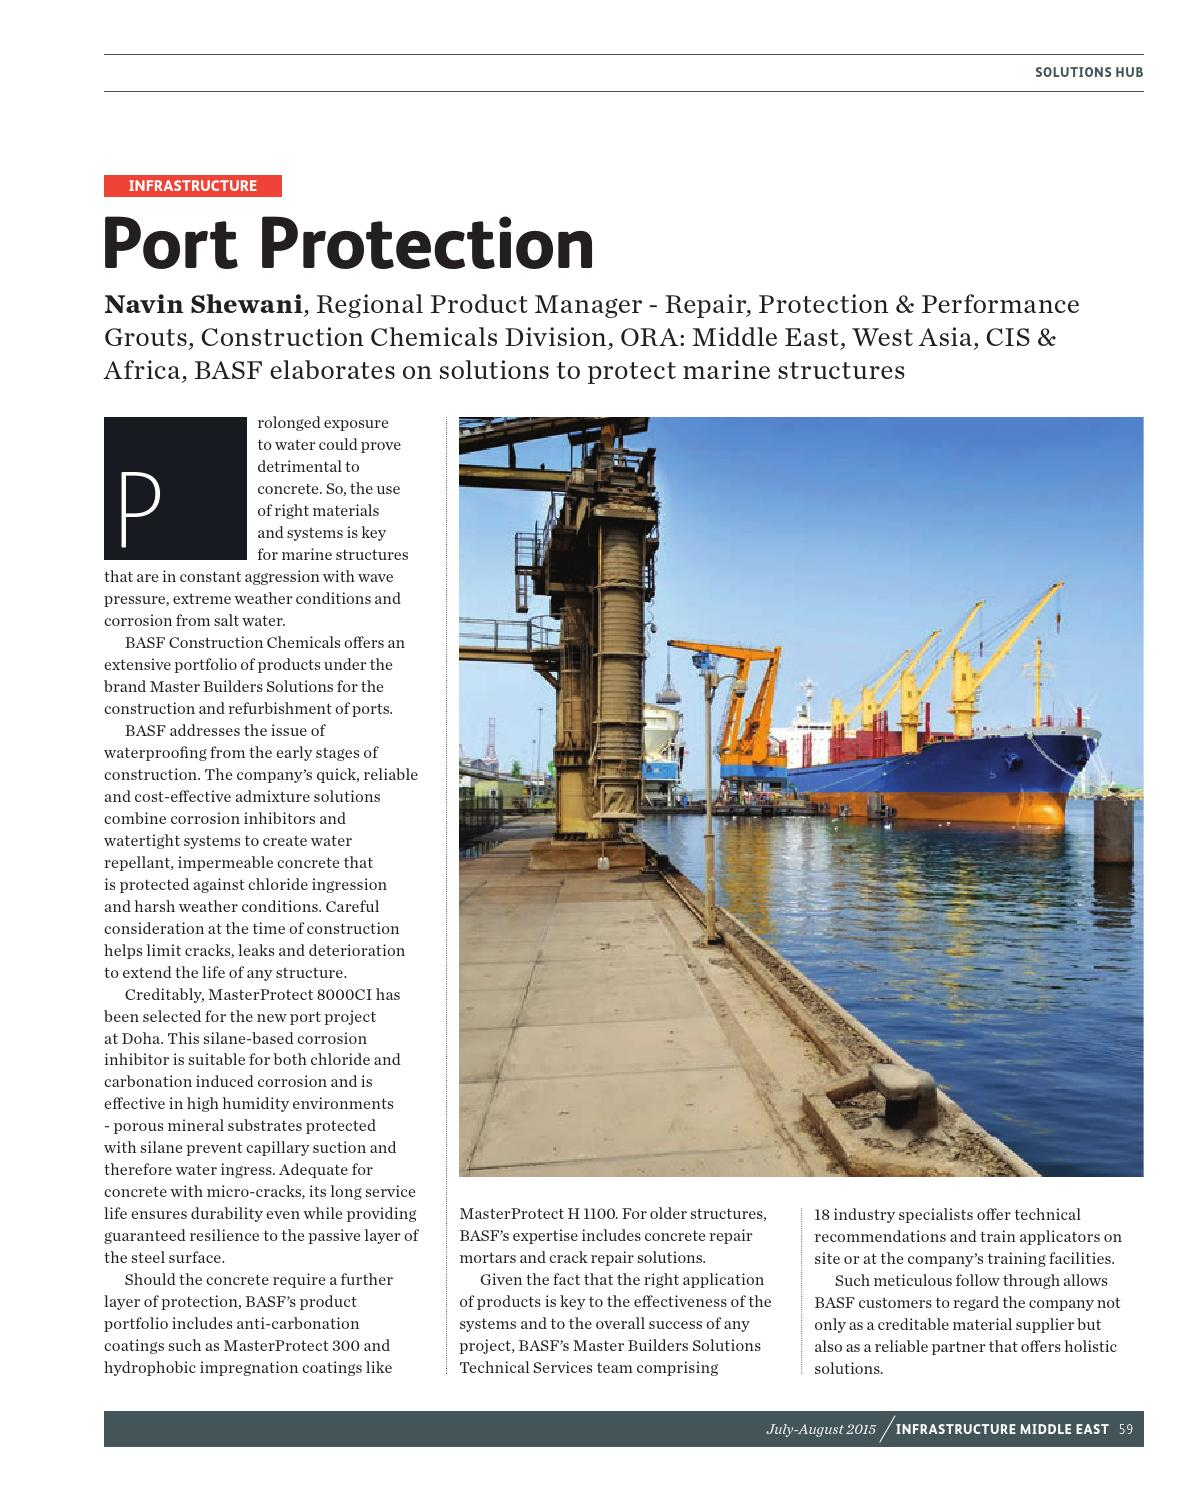 Infrastructure Middle East July/August 2015 by